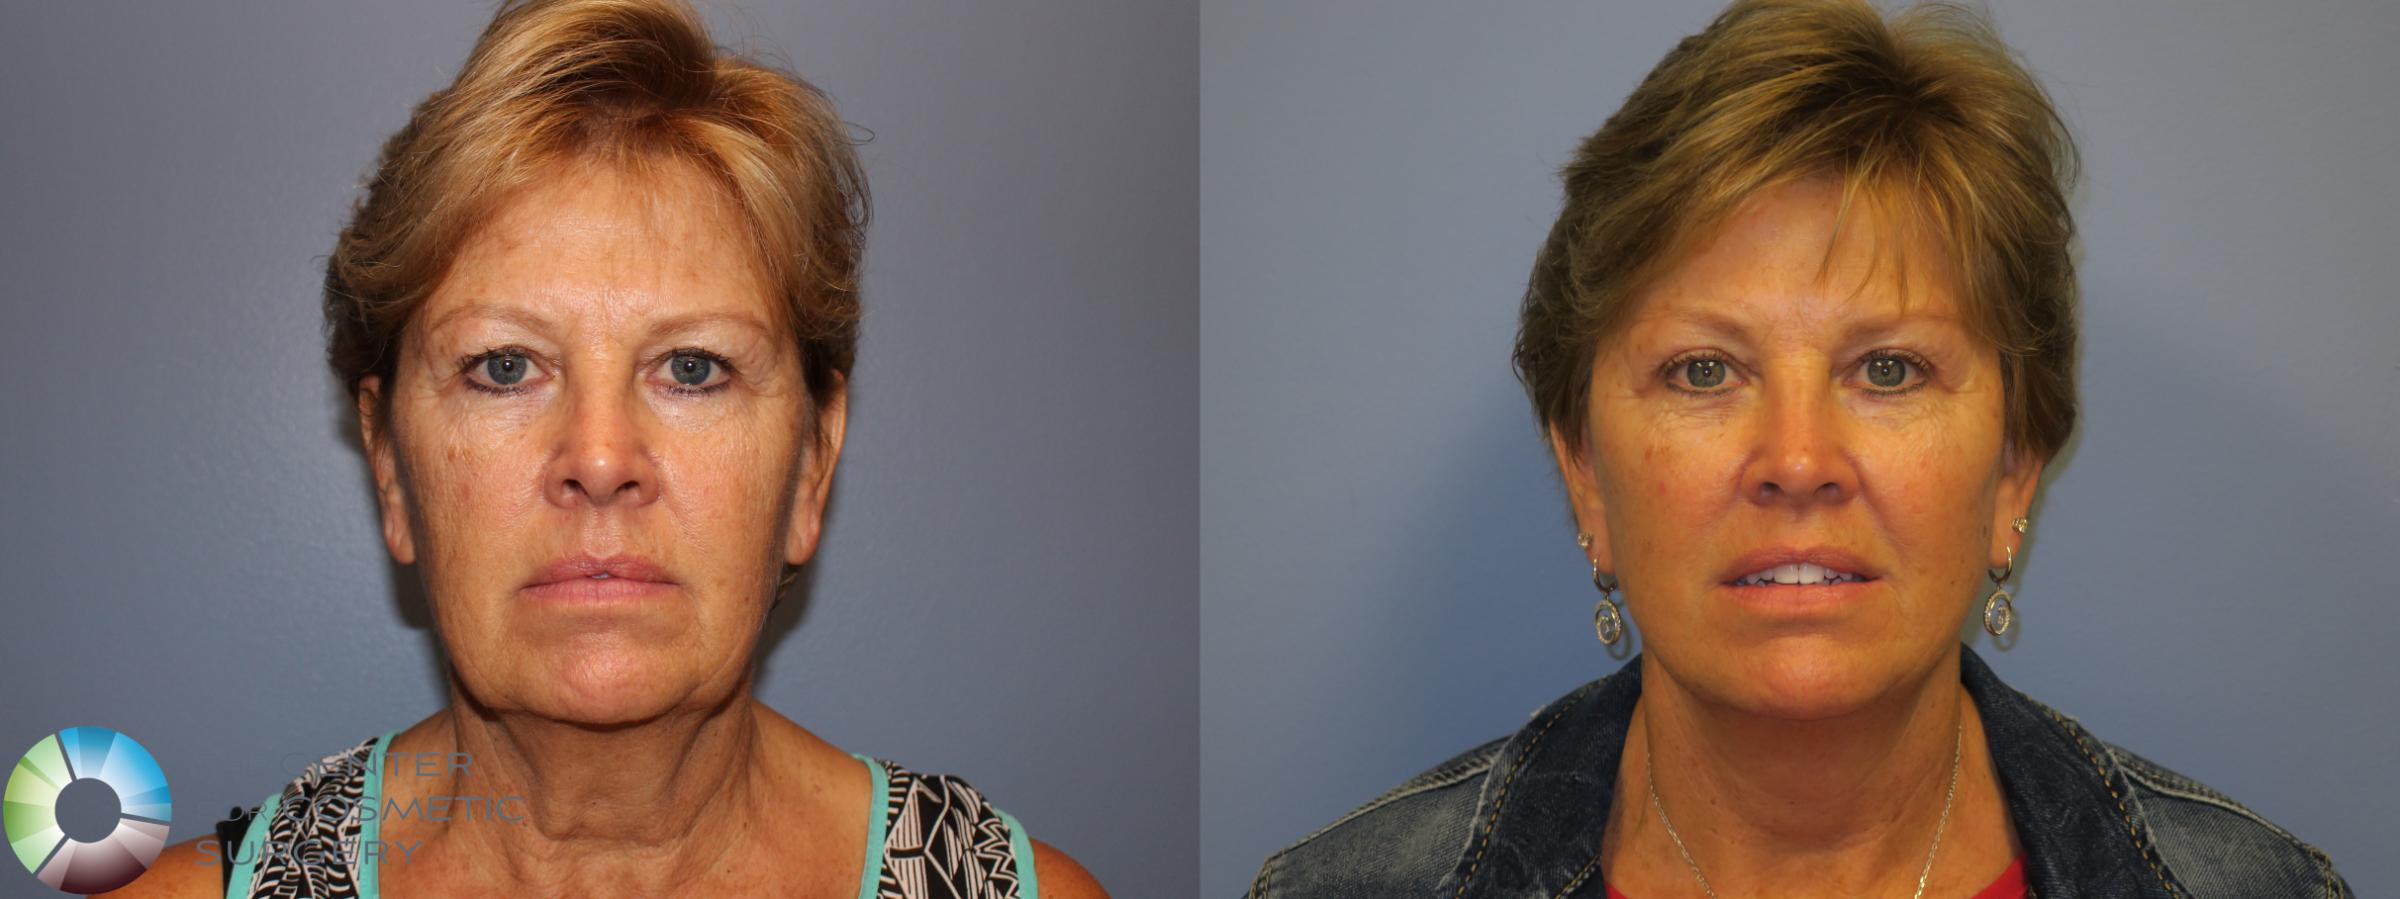 Neck Lift Case 11485 Before & After Front | Golden, CO | The Center for Cosmetic Surgery